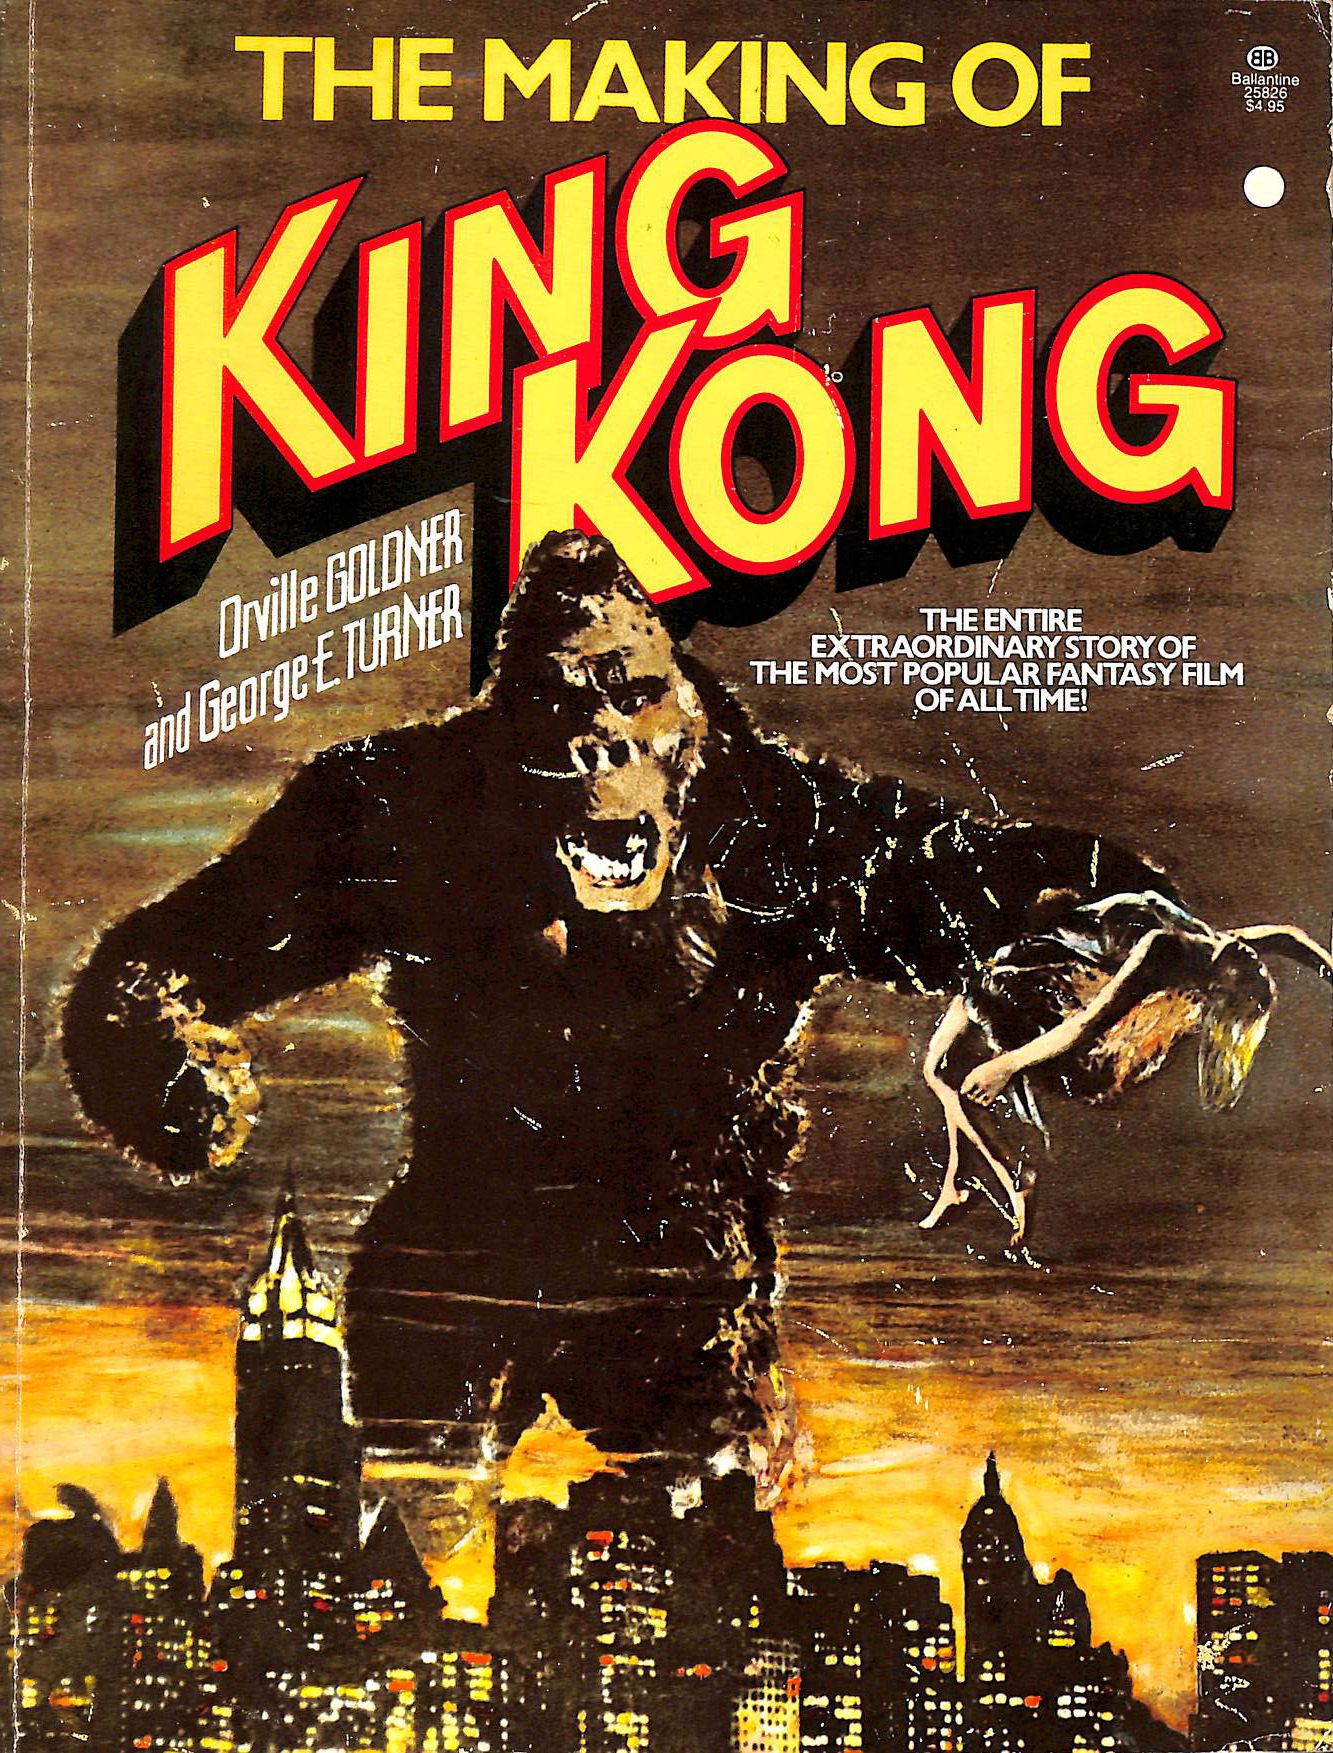 The Making Of King Kong, Orville Goldner, George E Turner